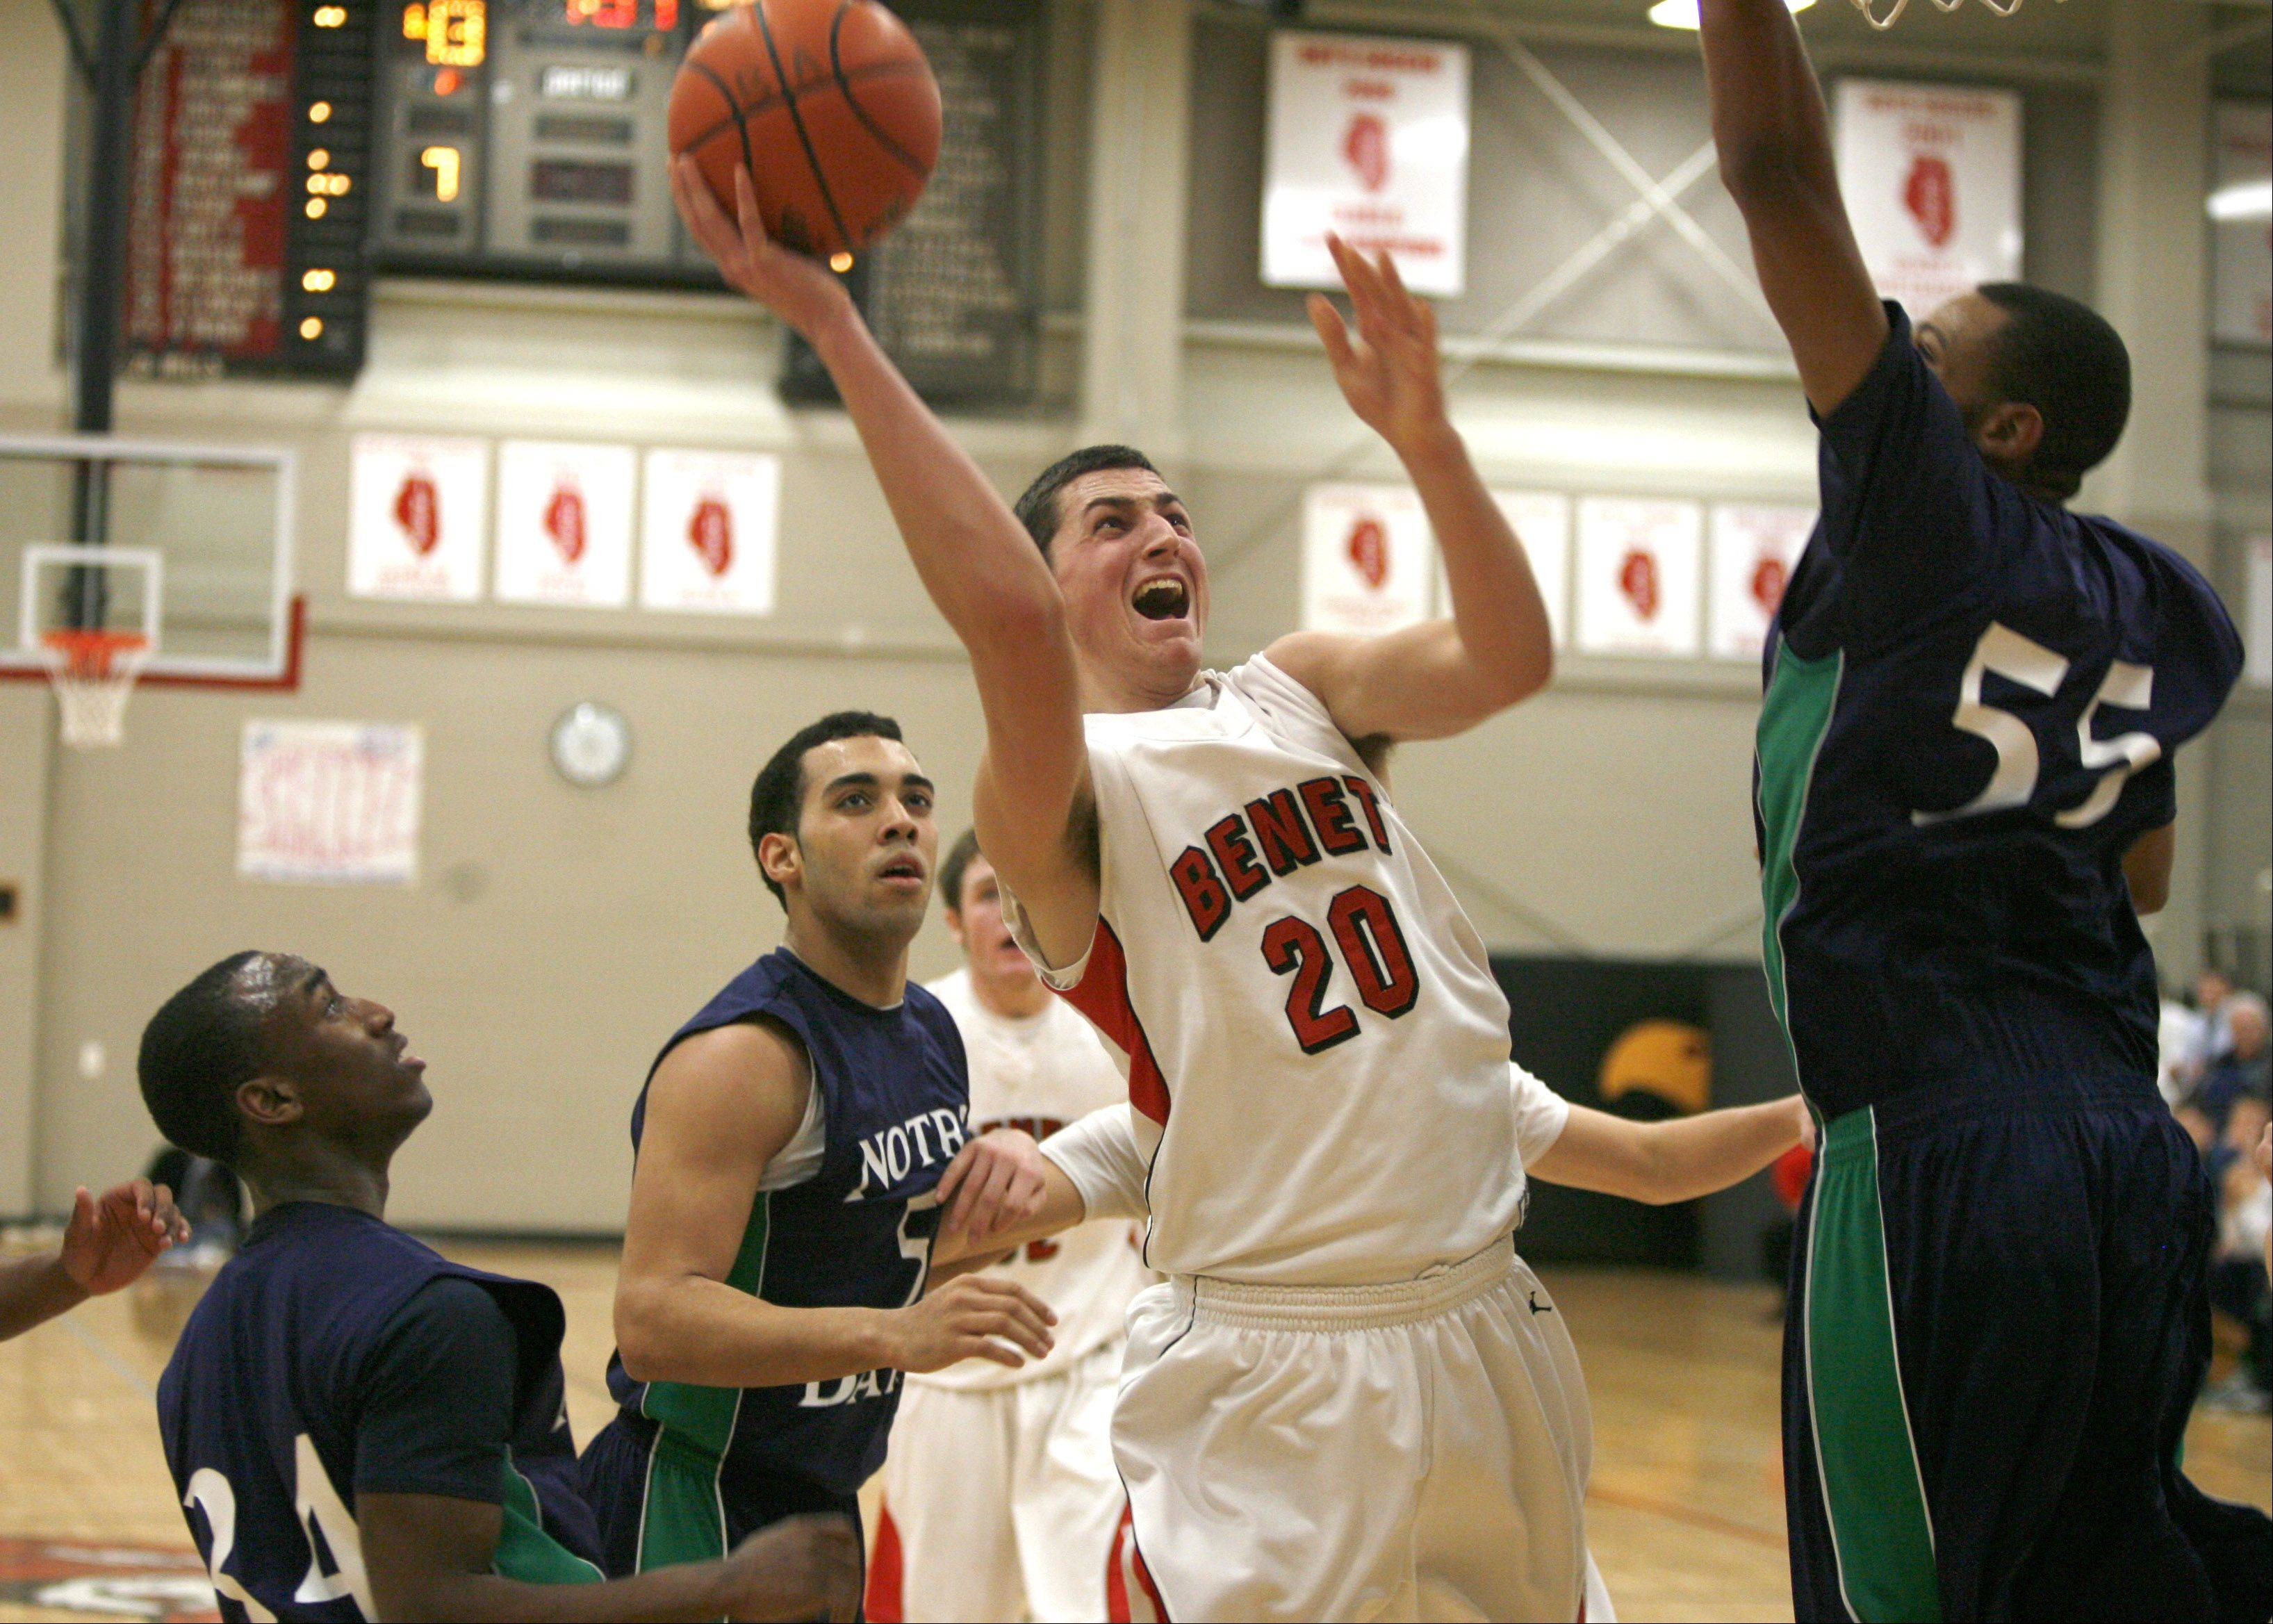 Benet Academy's Bobby Wehrli (20) works inside against Notre Dame, during boys basketball action in Lisle.